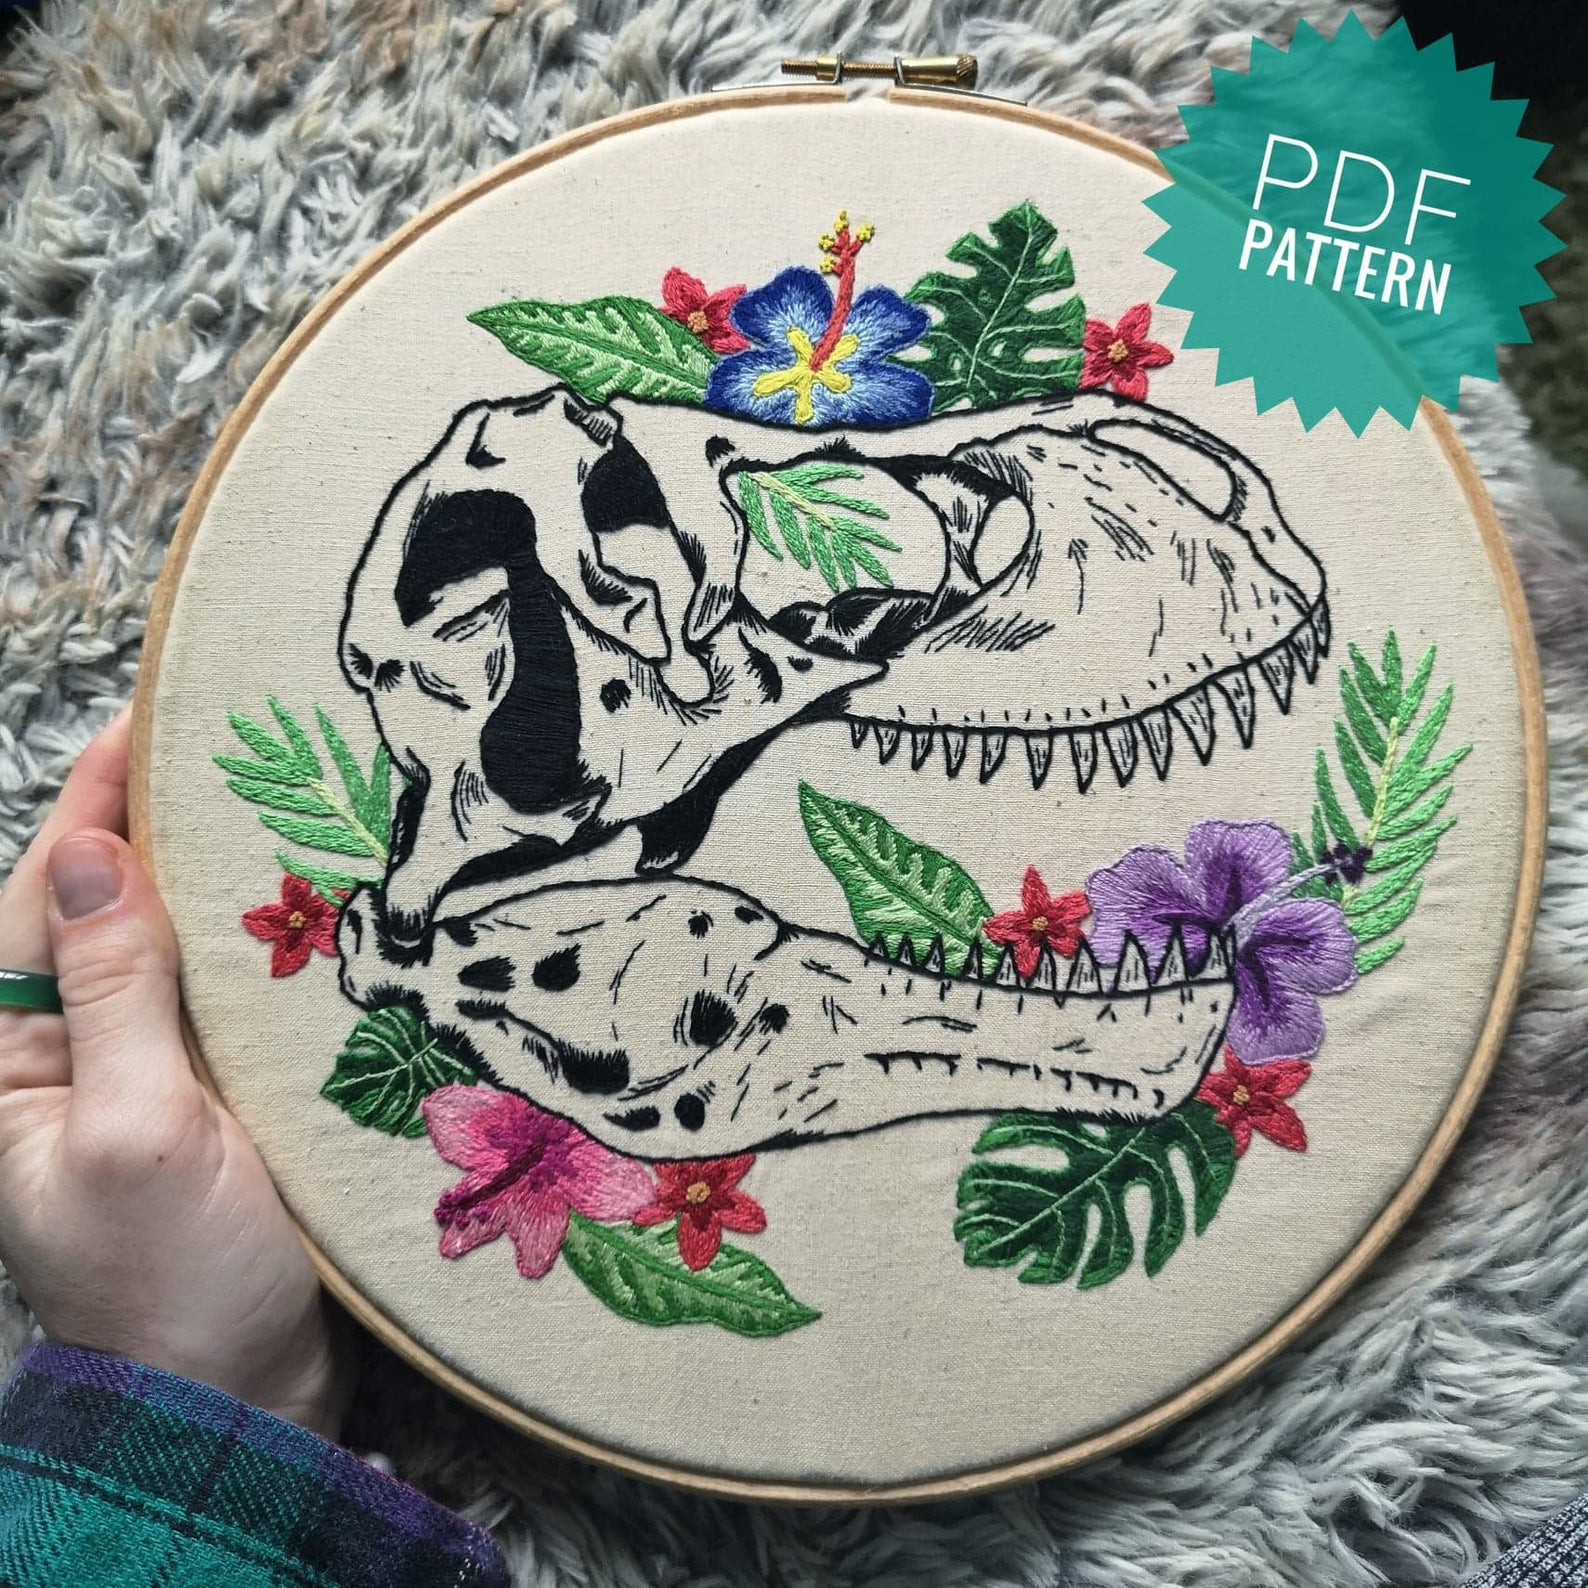 floral trex embroidery pattern